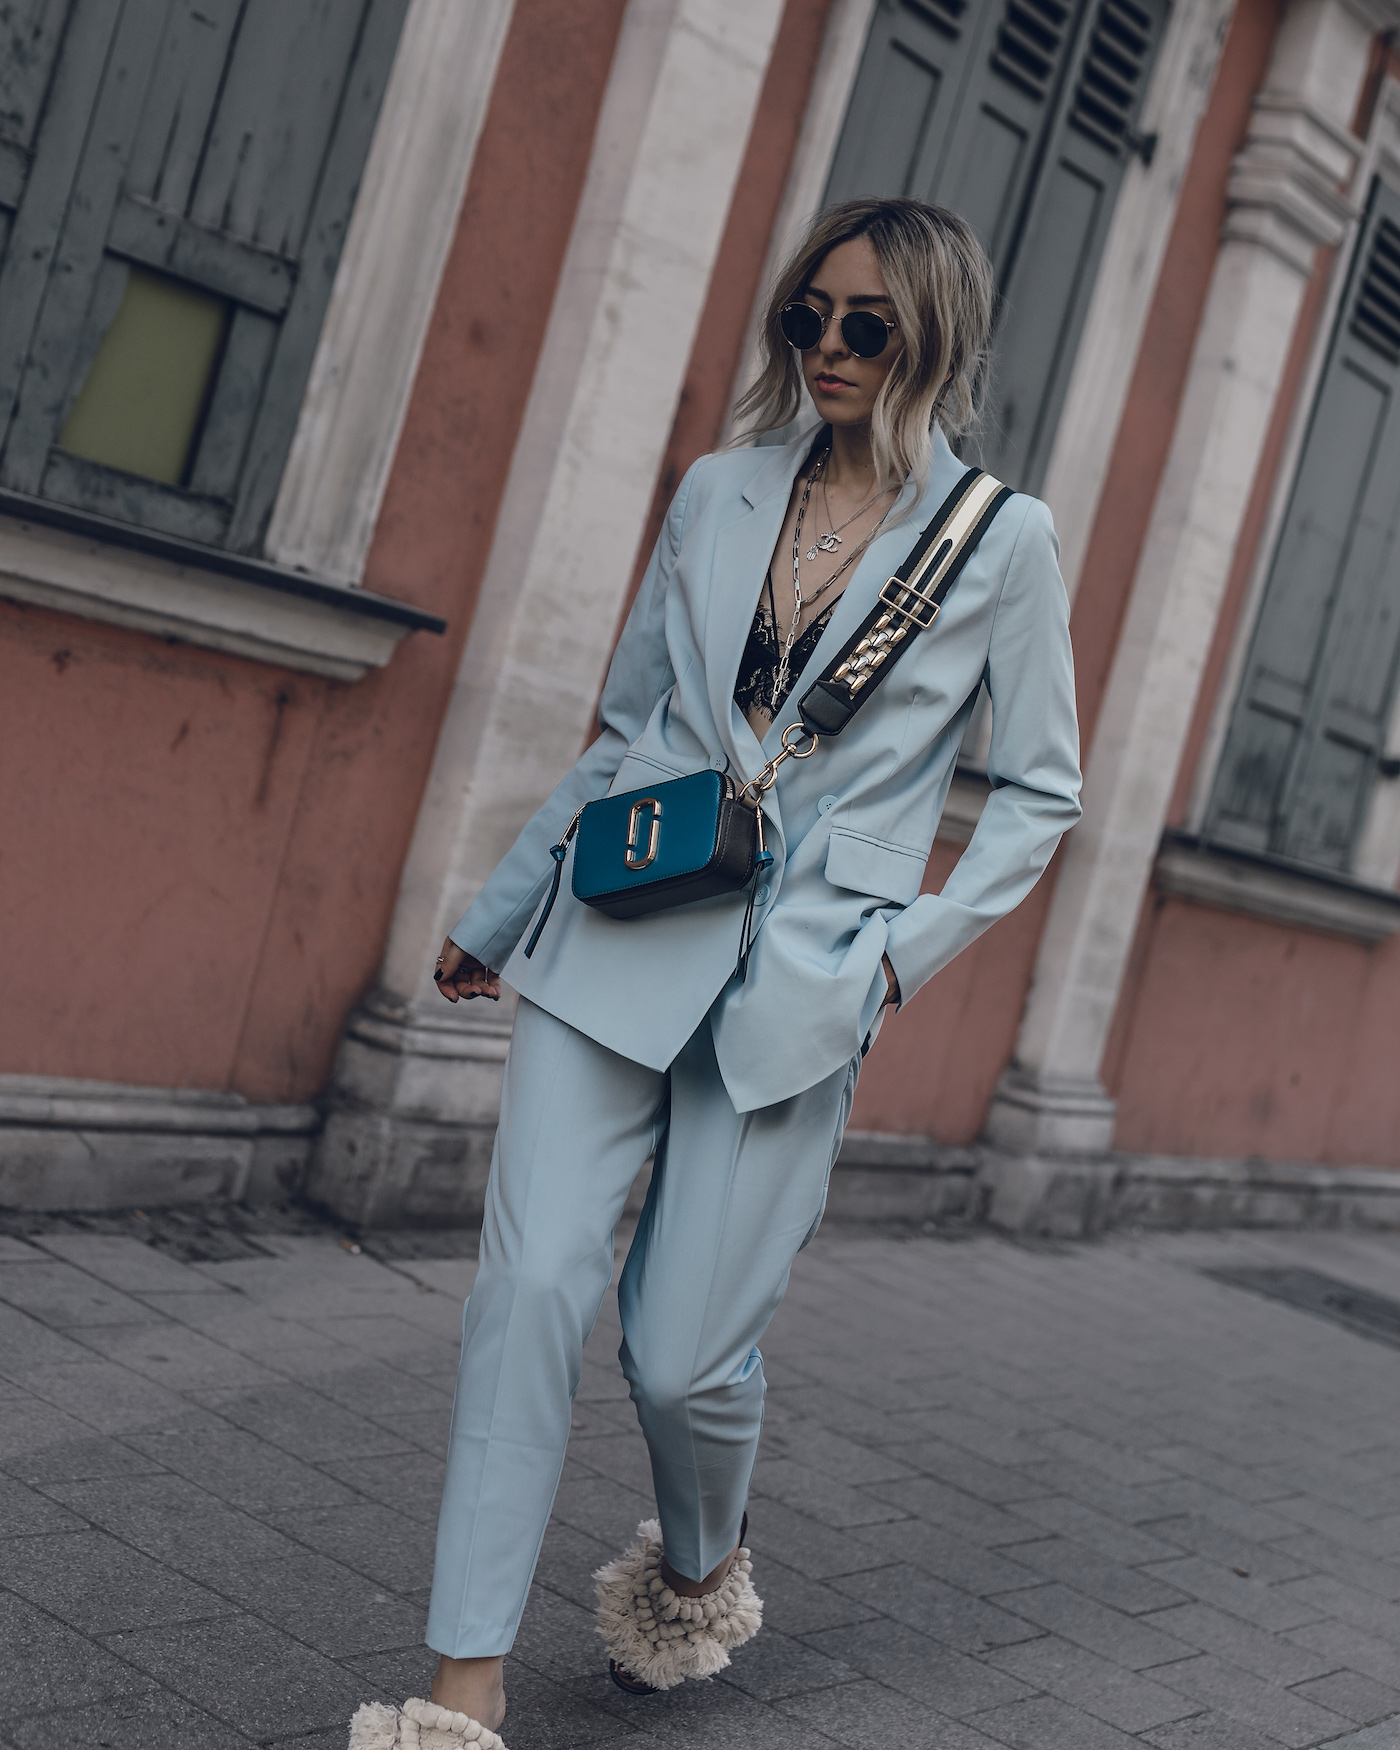 Spring Suit Pastel Women Streetstyle Outfit 2018 Summer Fashion Modern Casual Business | seen on Want Get Repeat Blog